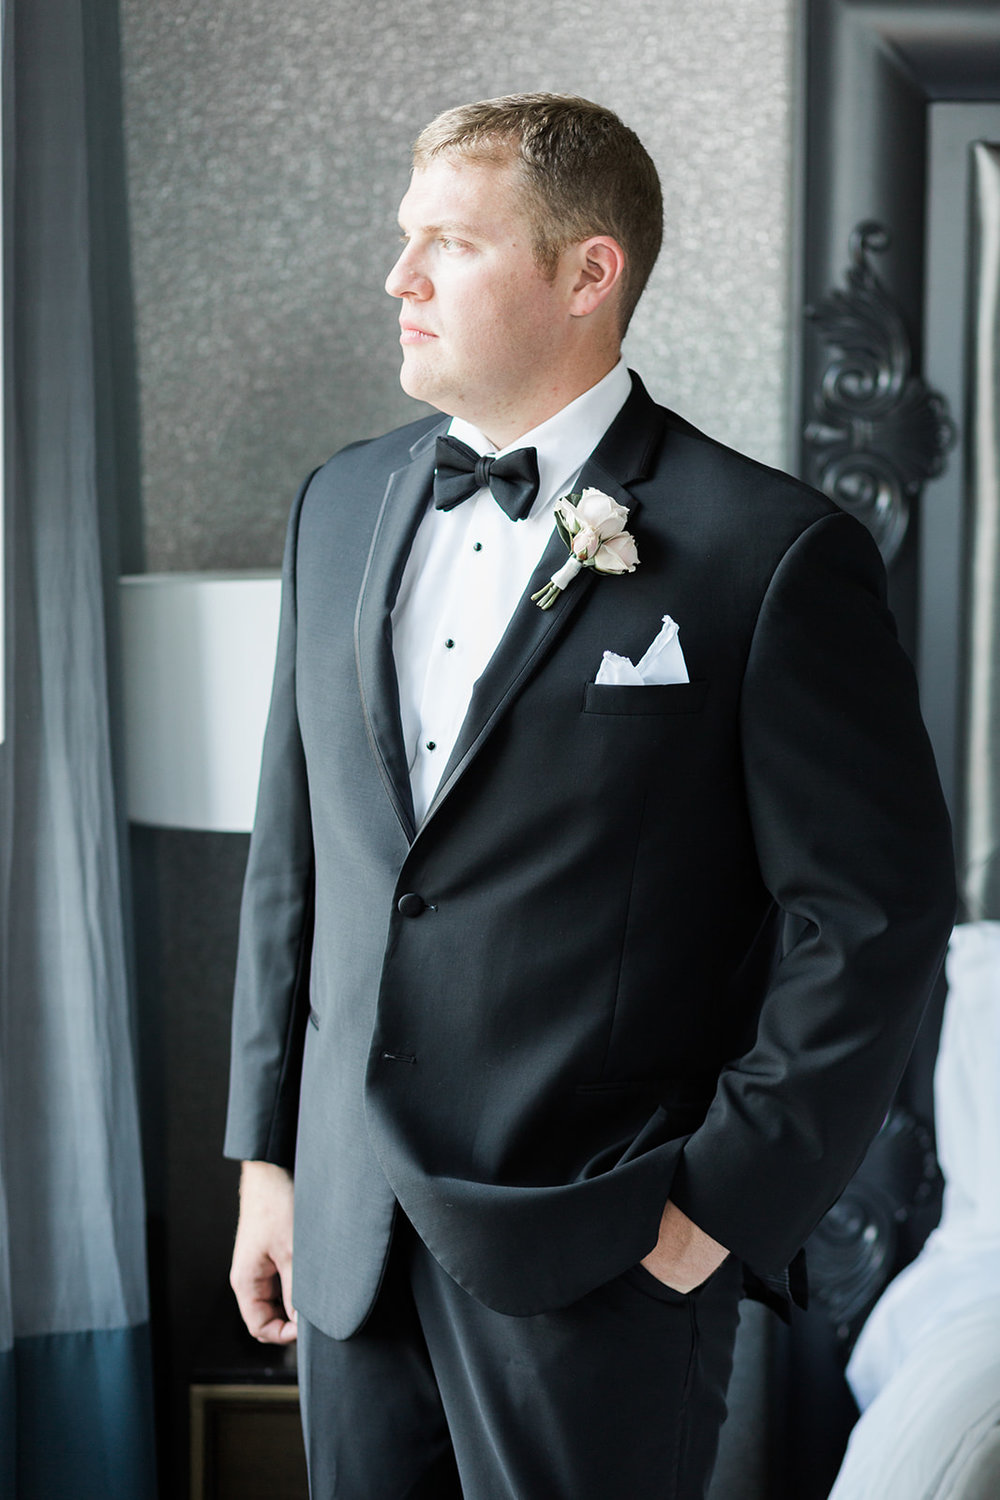 Groom poses for wedding photos for Pittsburgh wedding at PNC Park planned by Exhale Events. Find more wedding inspiration at exhale-events.com!